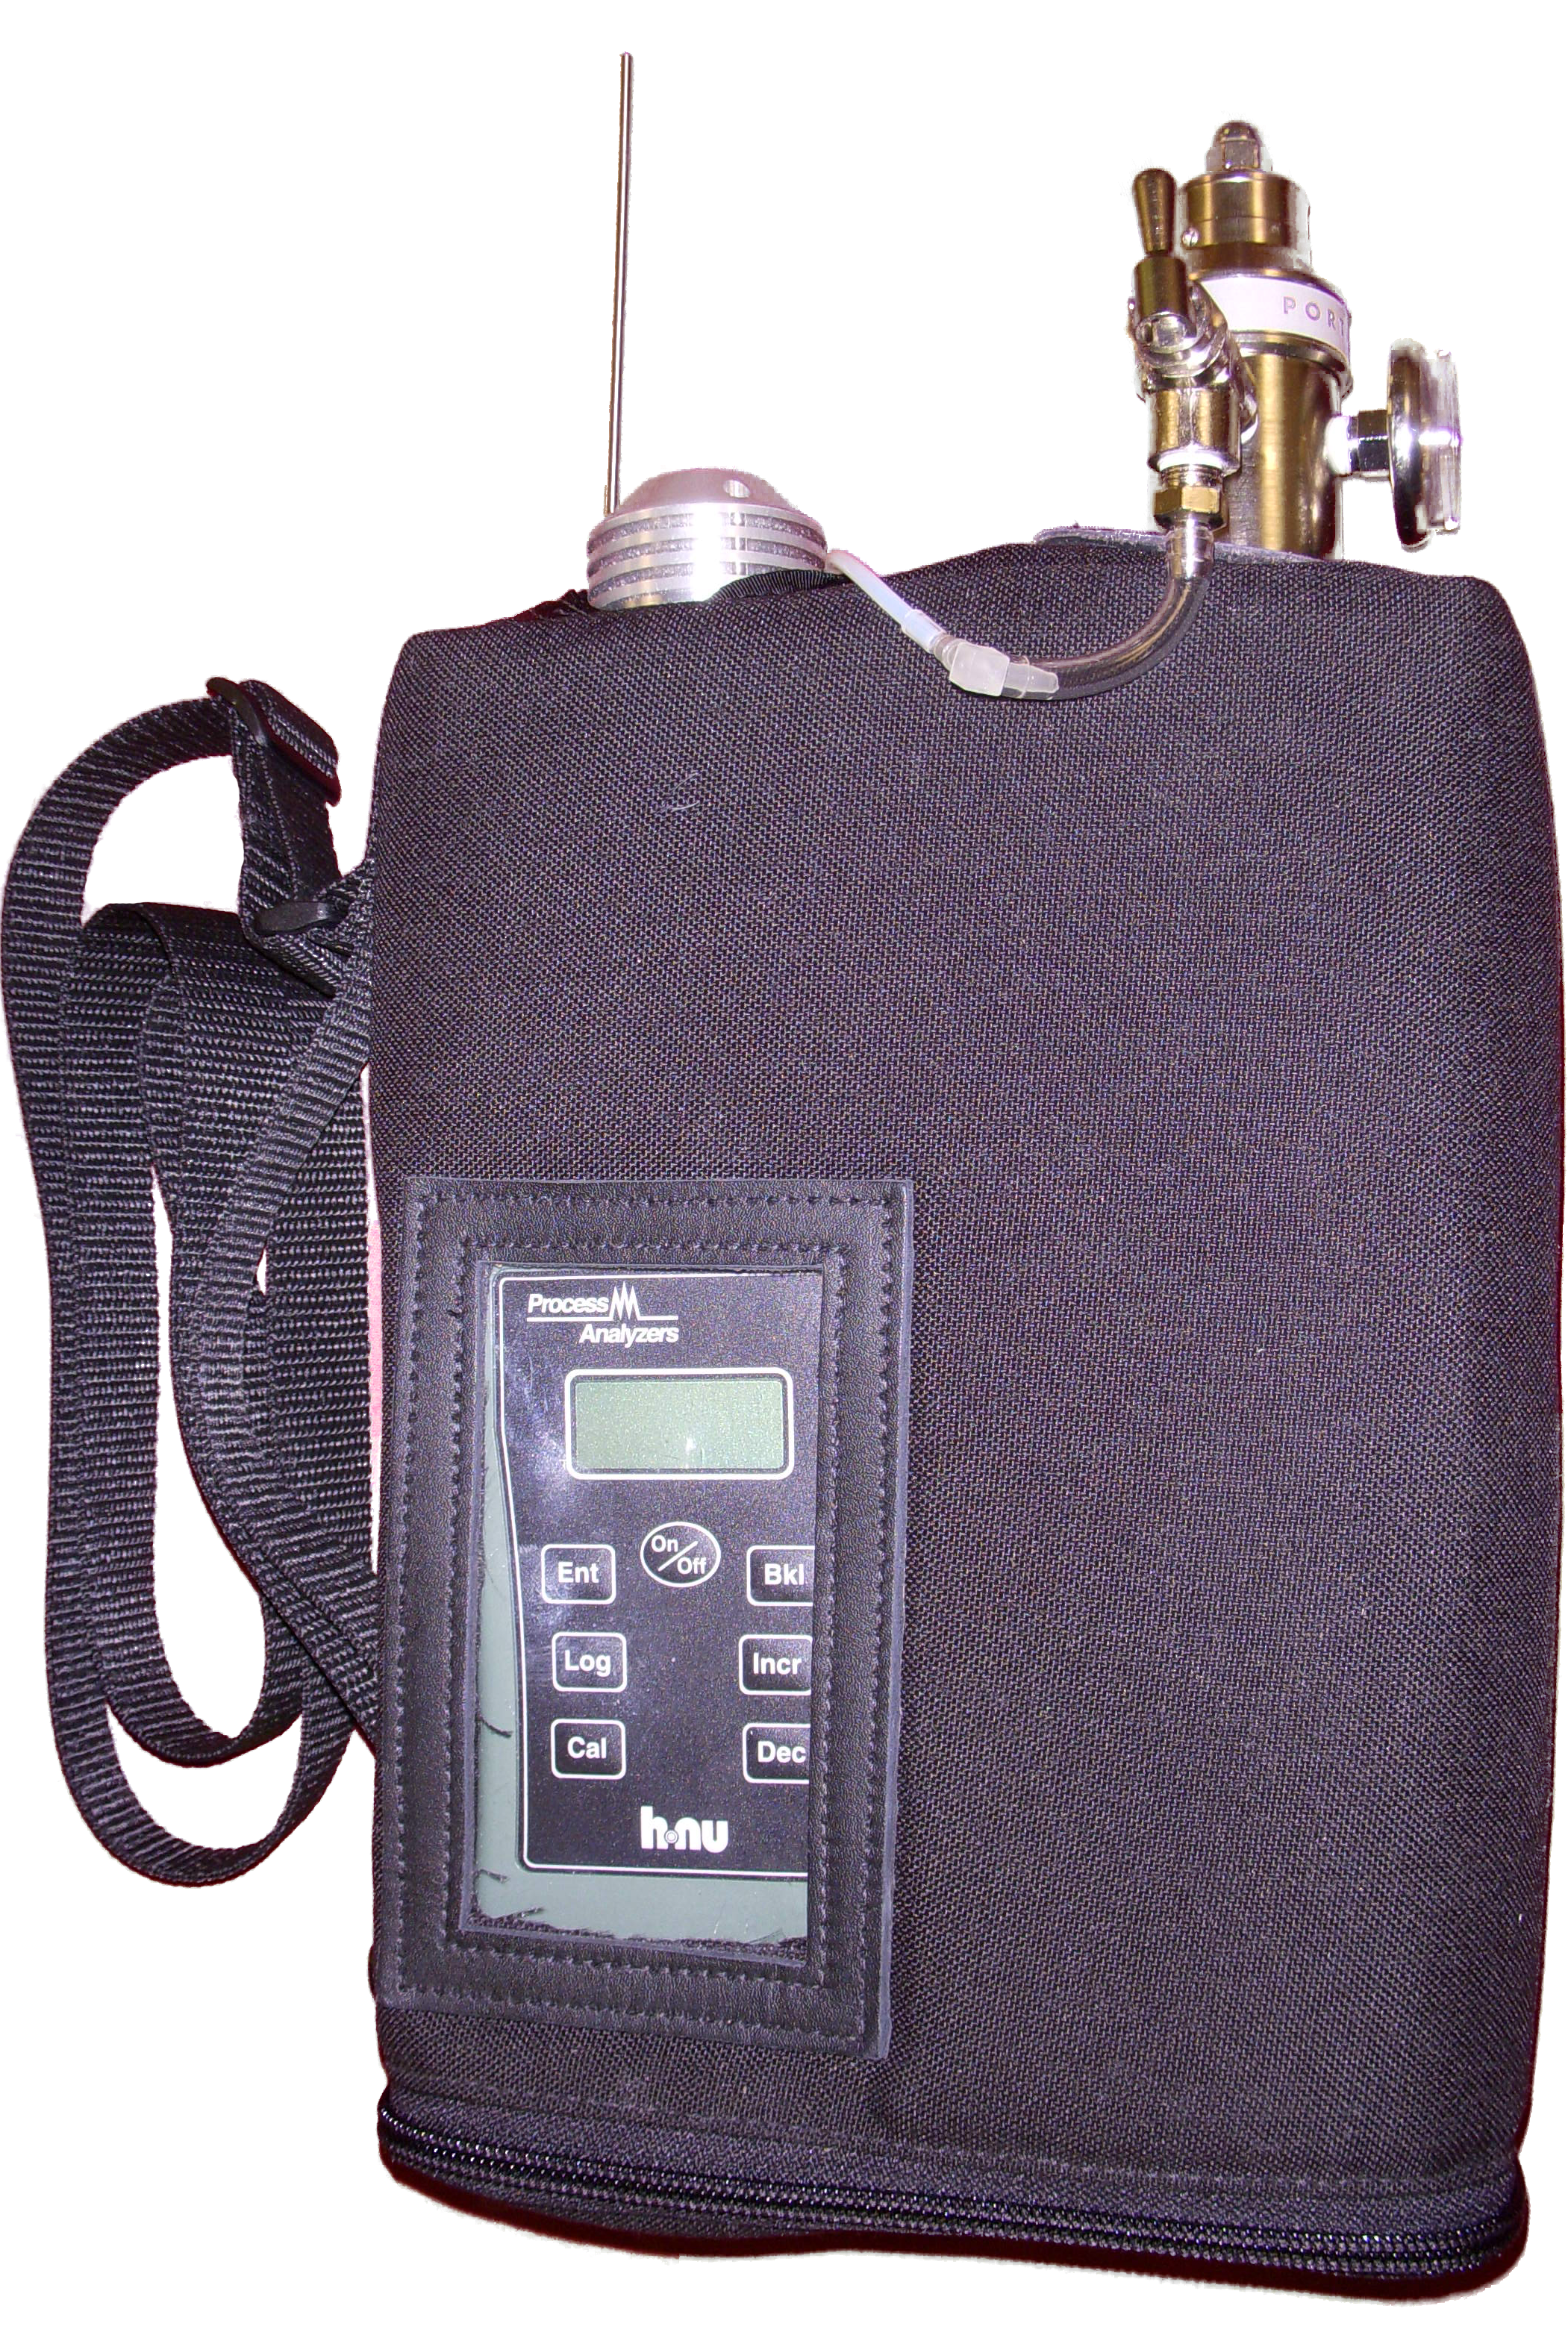 Model 115 Portable FID Analyzer